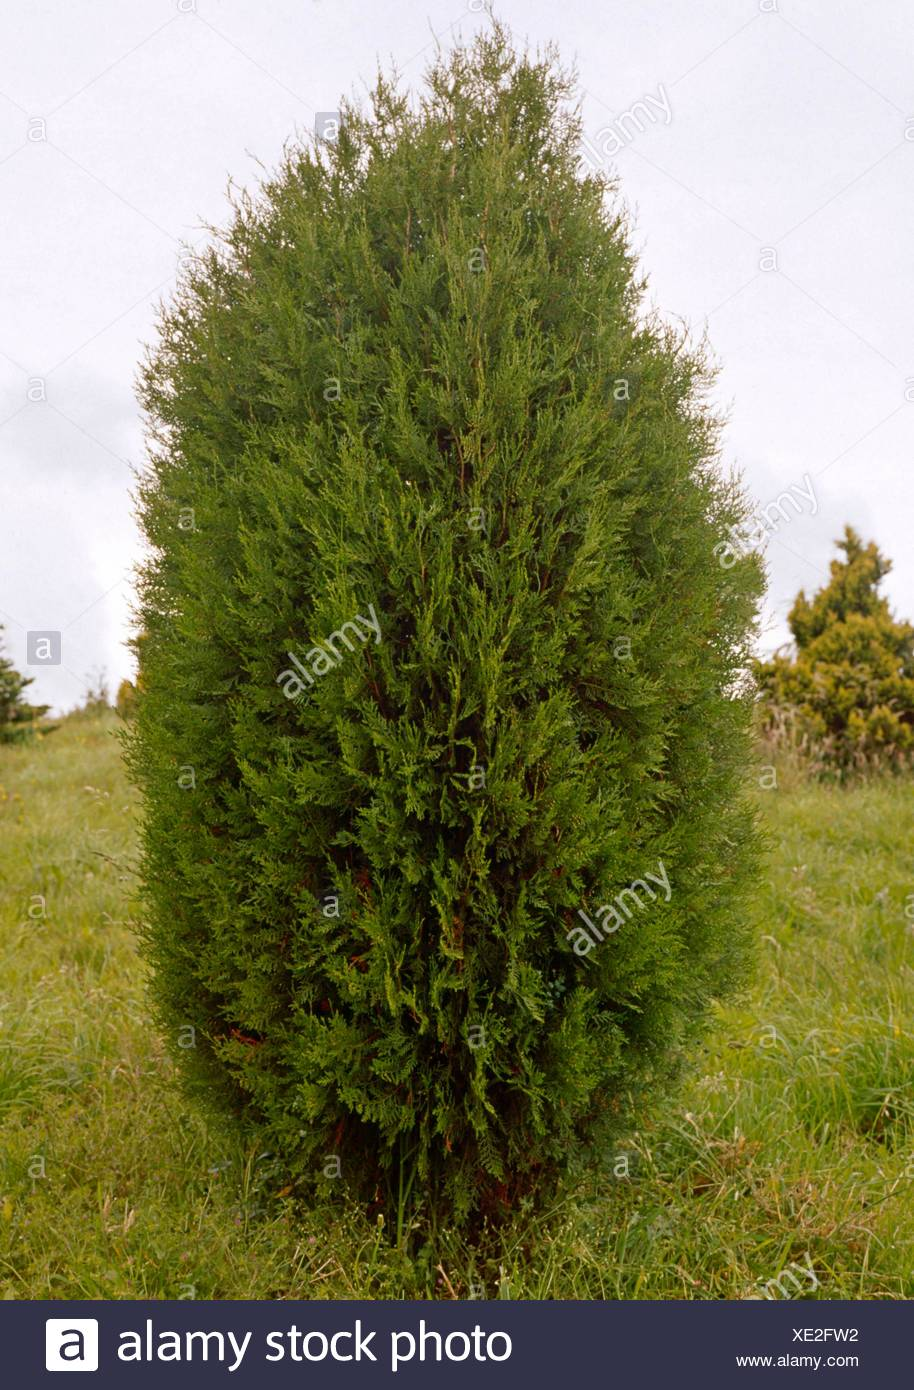 Berühmt Thuja Orientalis | Thuja Orientalis Pine Tree Stock Photo Edit Now &EC_59